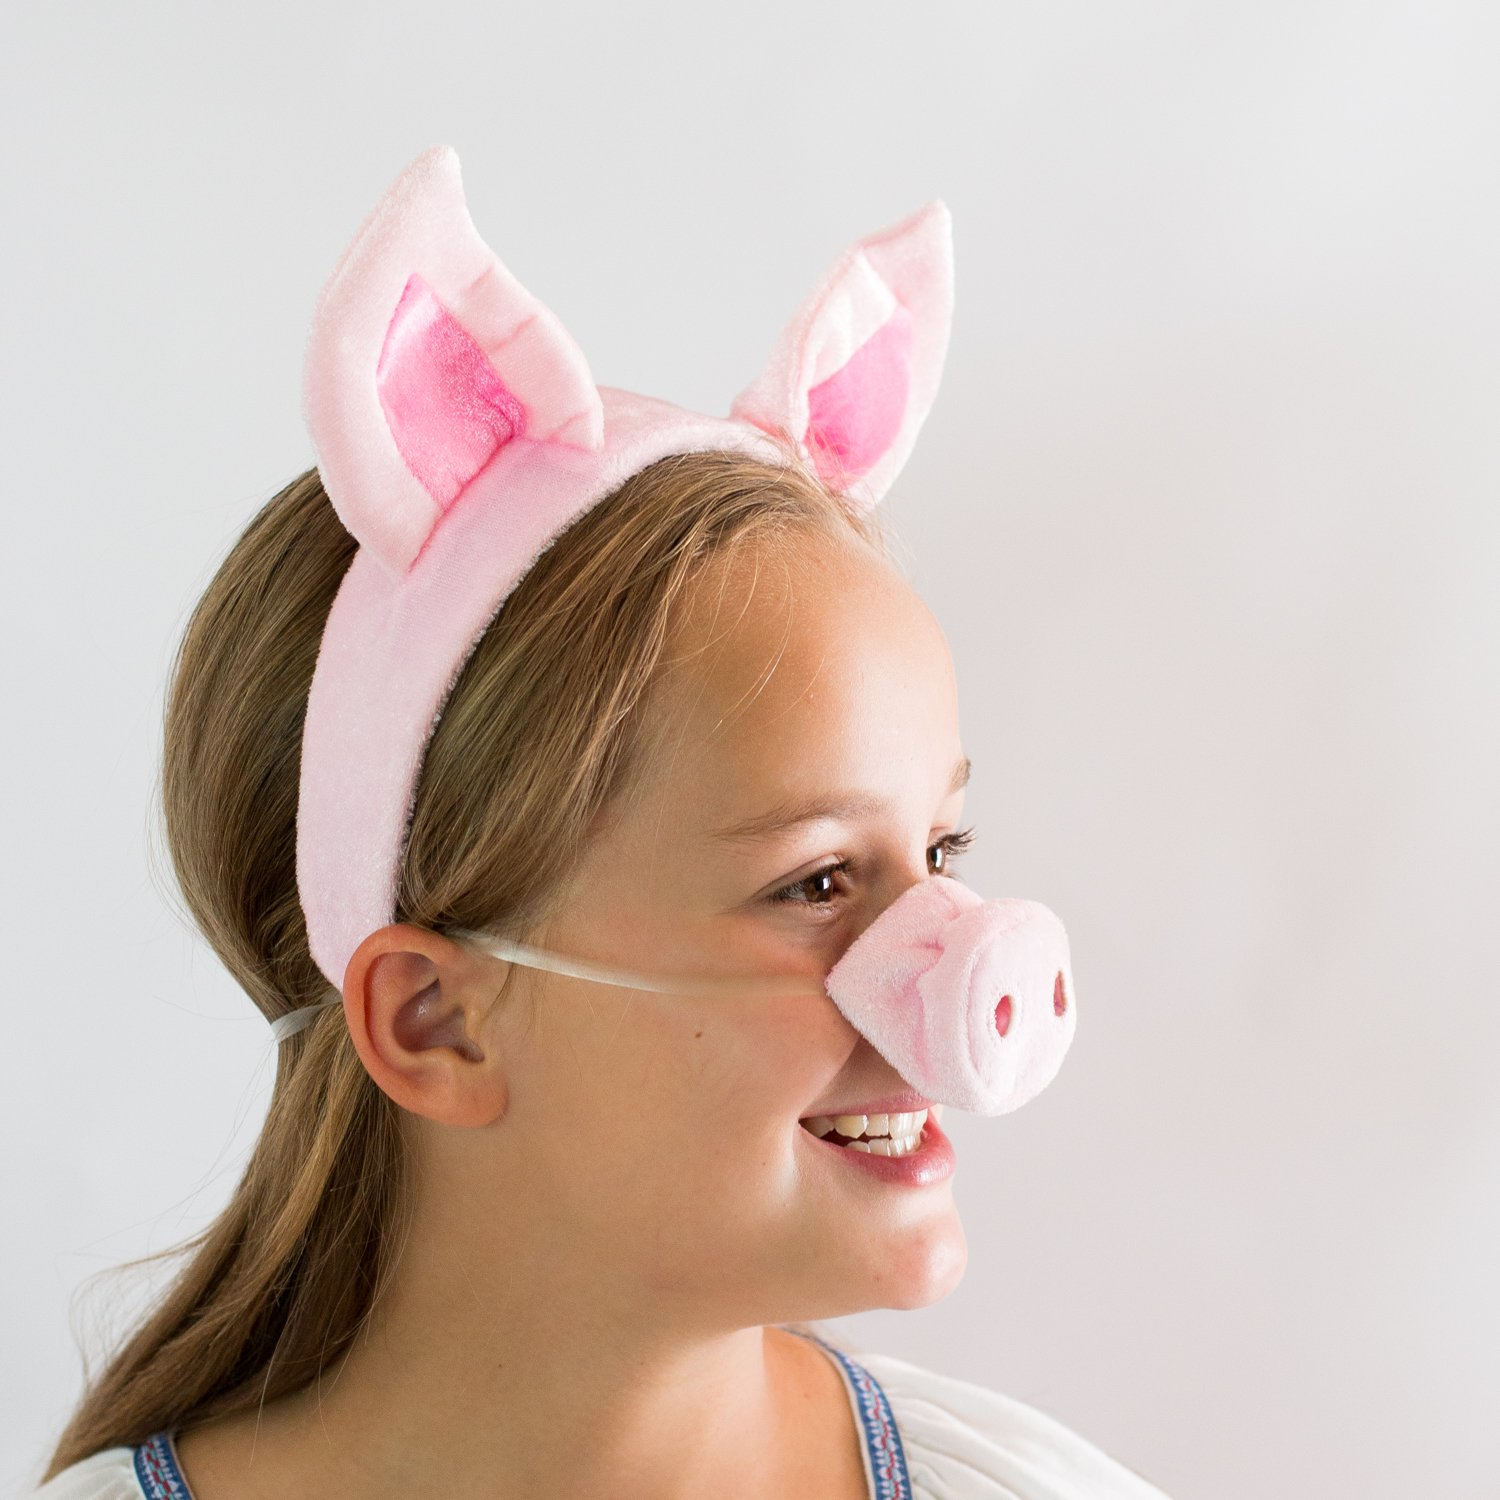 sc 1 st  TIBS & Pig Ears Nose and Tail Set - Costume Accessories - TIBS